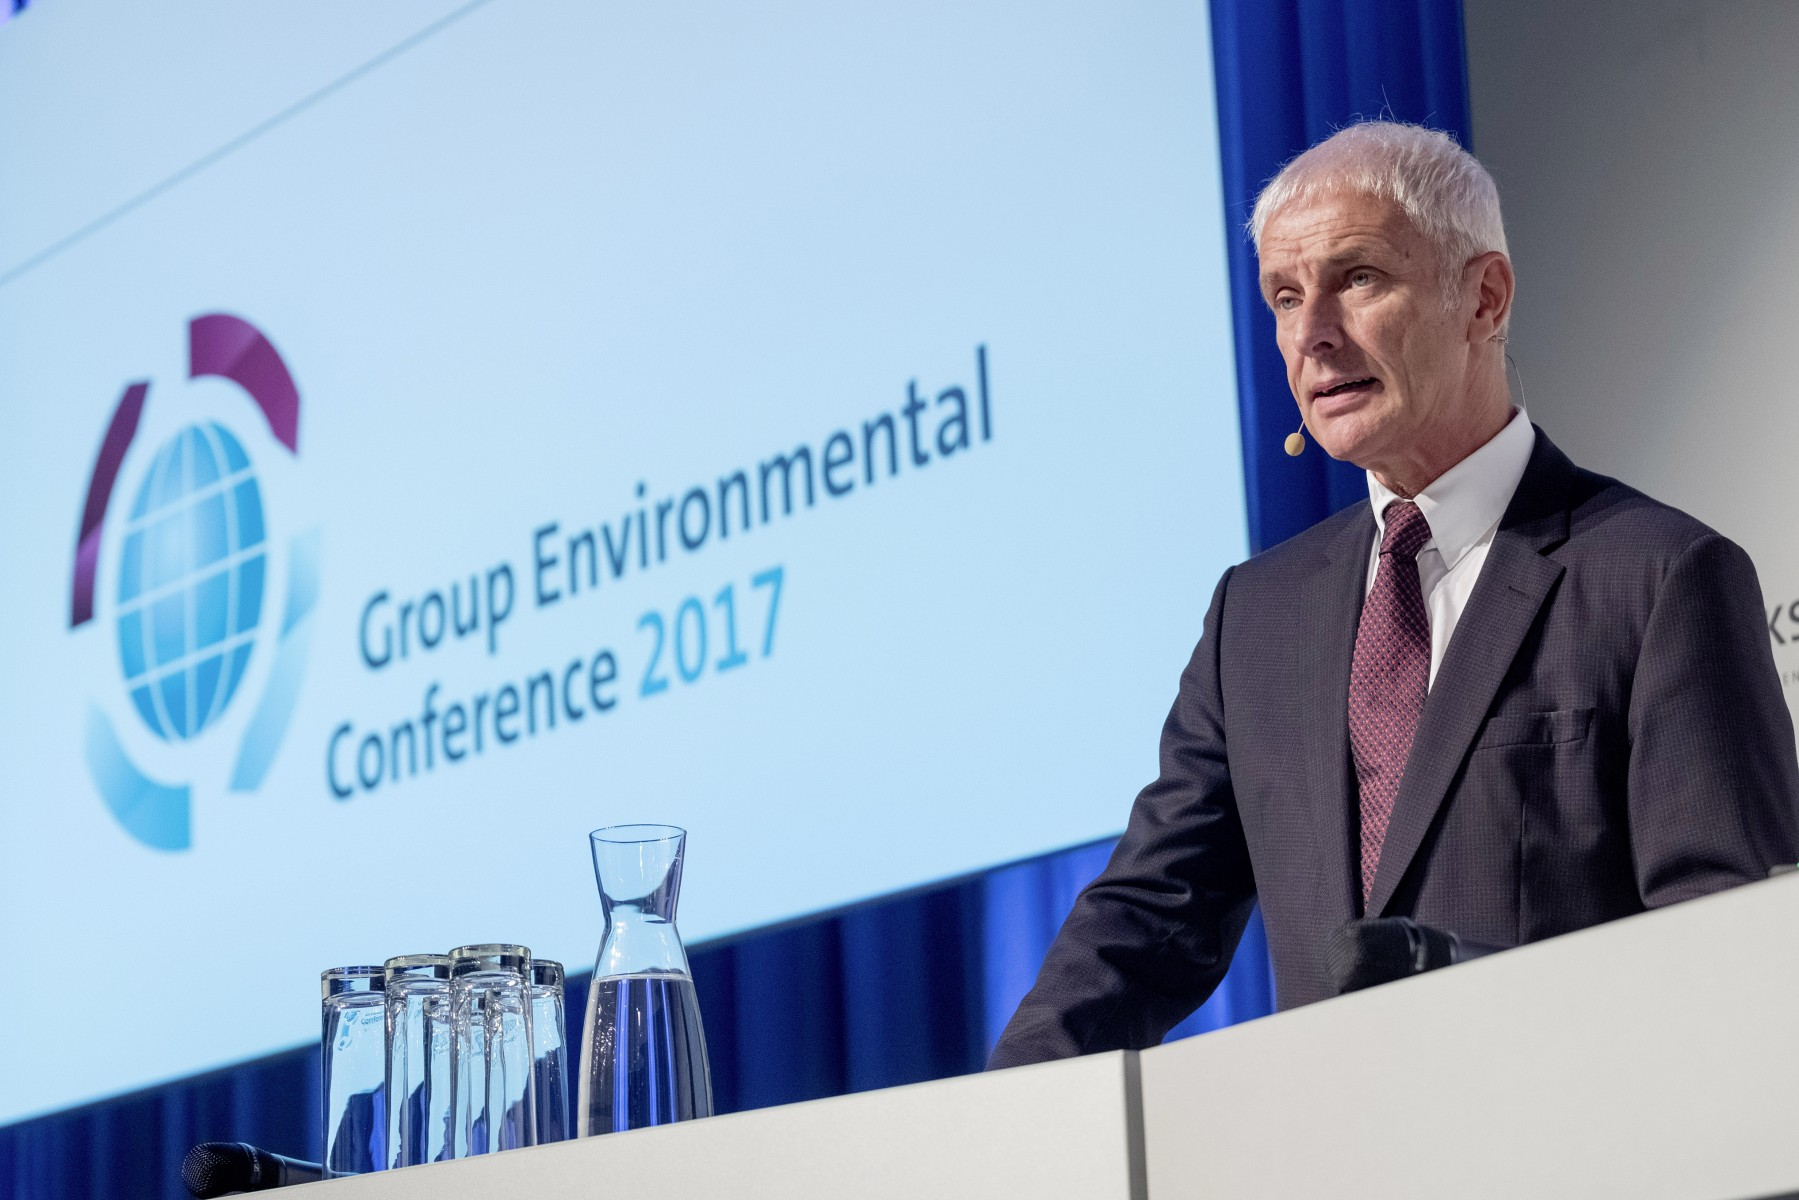 Group Environmental Conference (GEC)